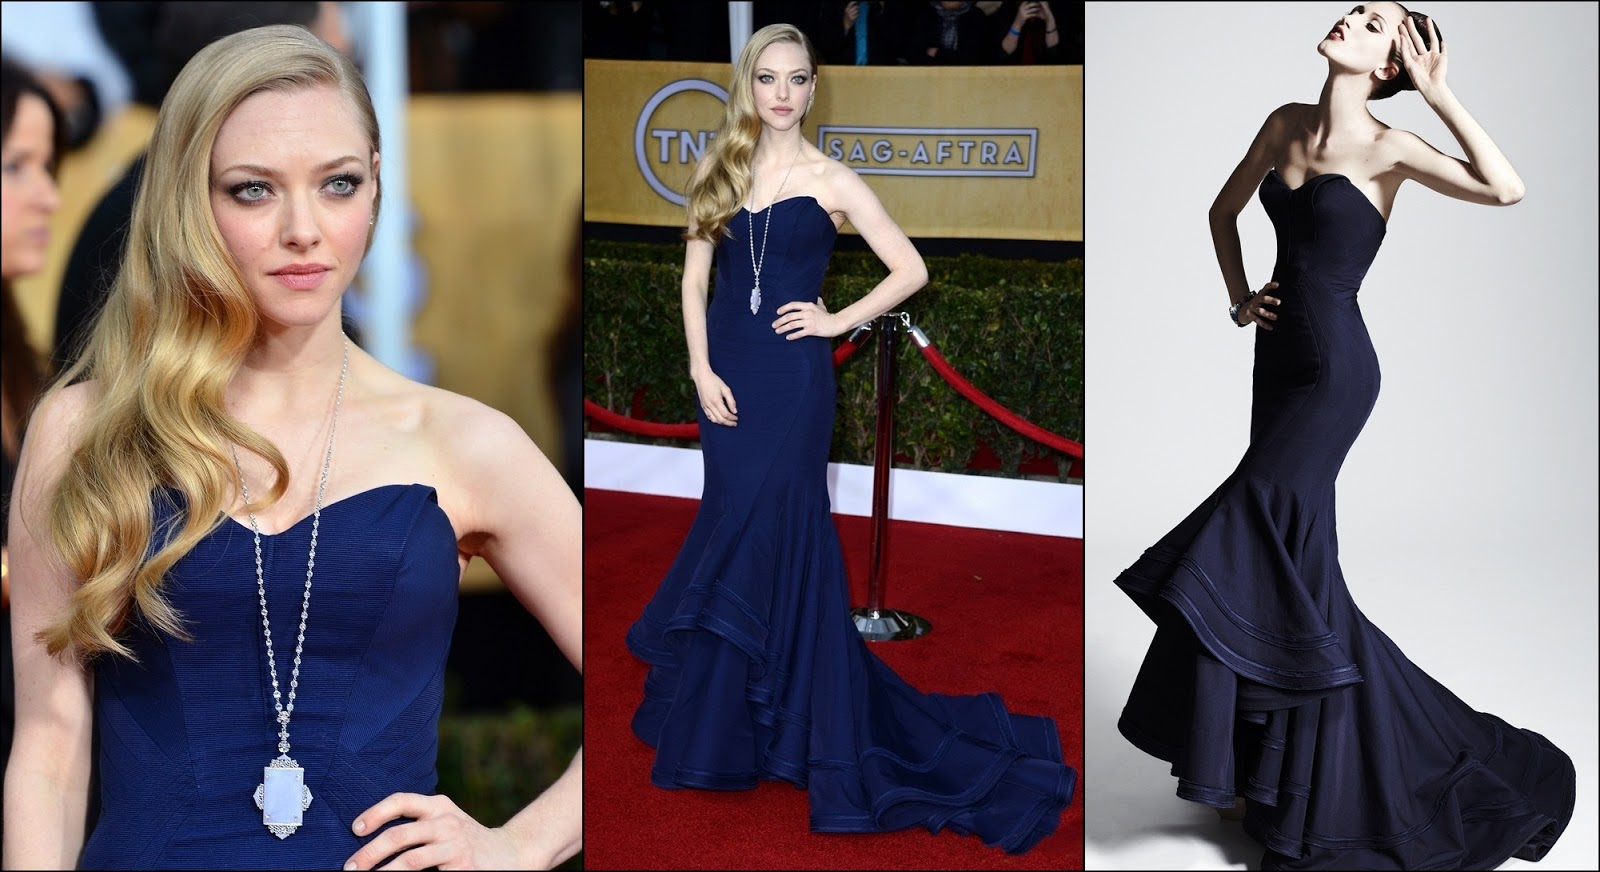 http://3.bp.blogspot.com/-IT0lIZ3lCtM/UQfXzd4Pi3I/AAAAAAAAHdA/BN5bUIXNpLA/s1600/8_amanda-seyfried-eddie-redmayne-sag-awards-2013-red-carpet-04-horz.jpg